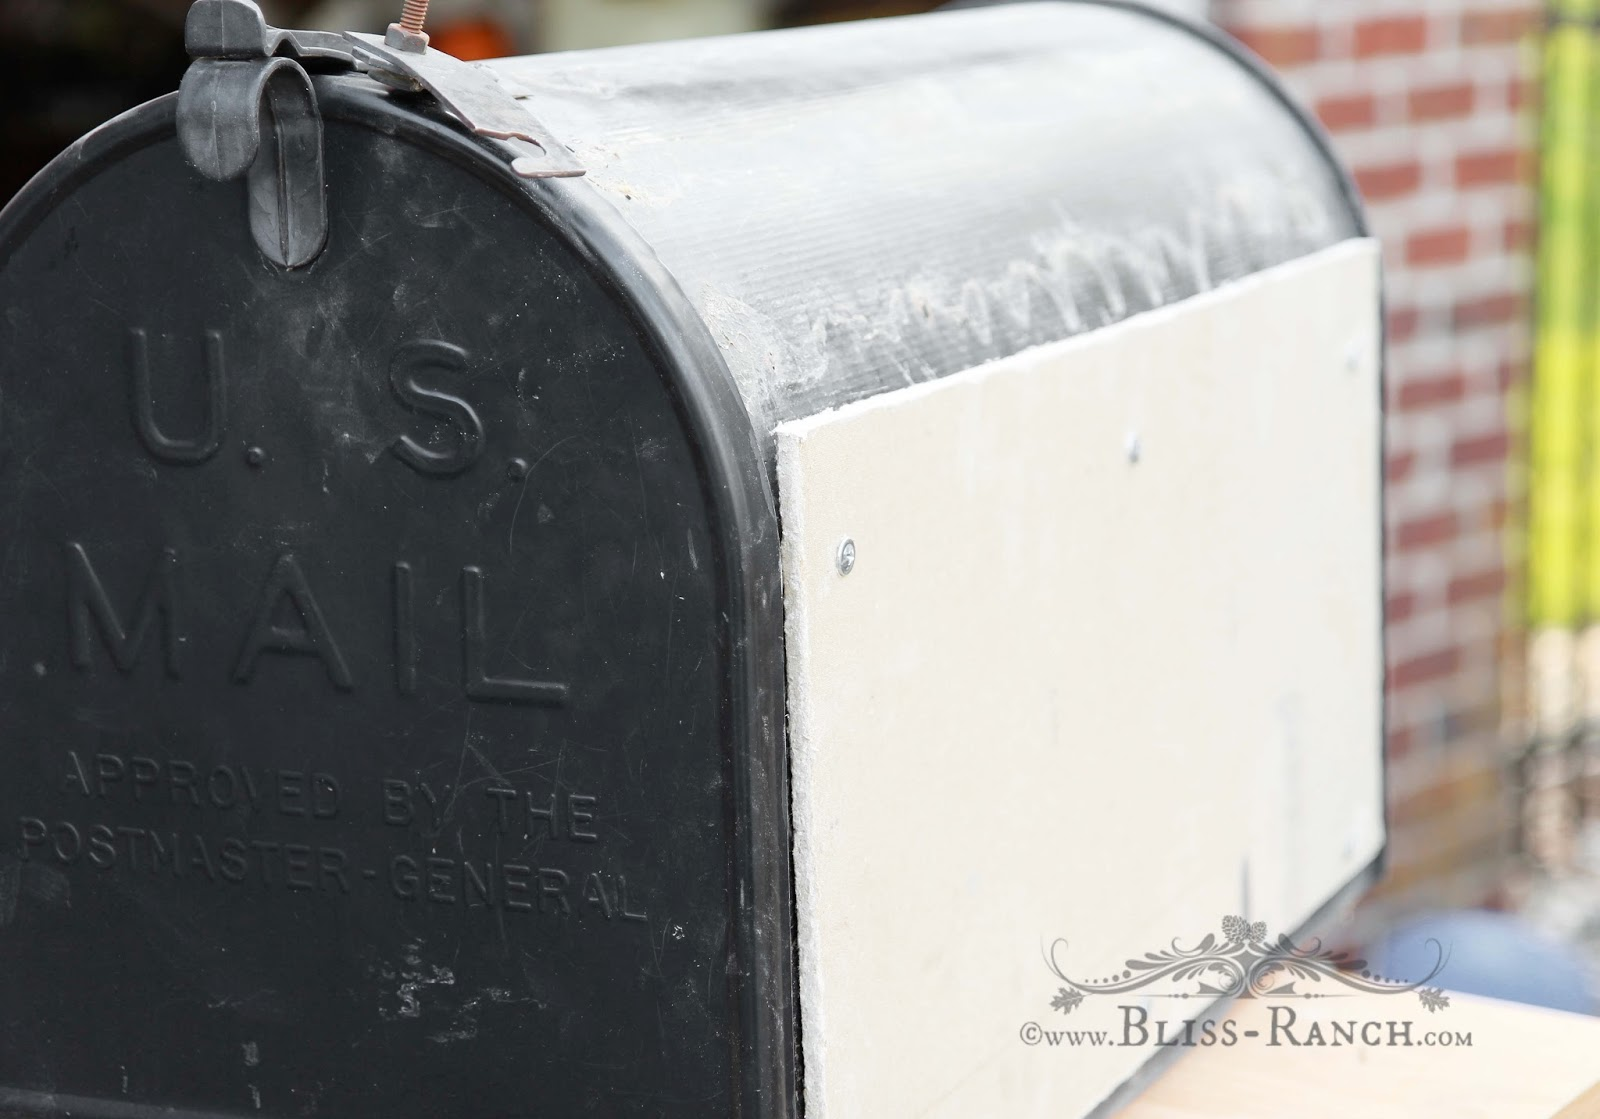 Mailbox Makeover Bliss-Ranch.com